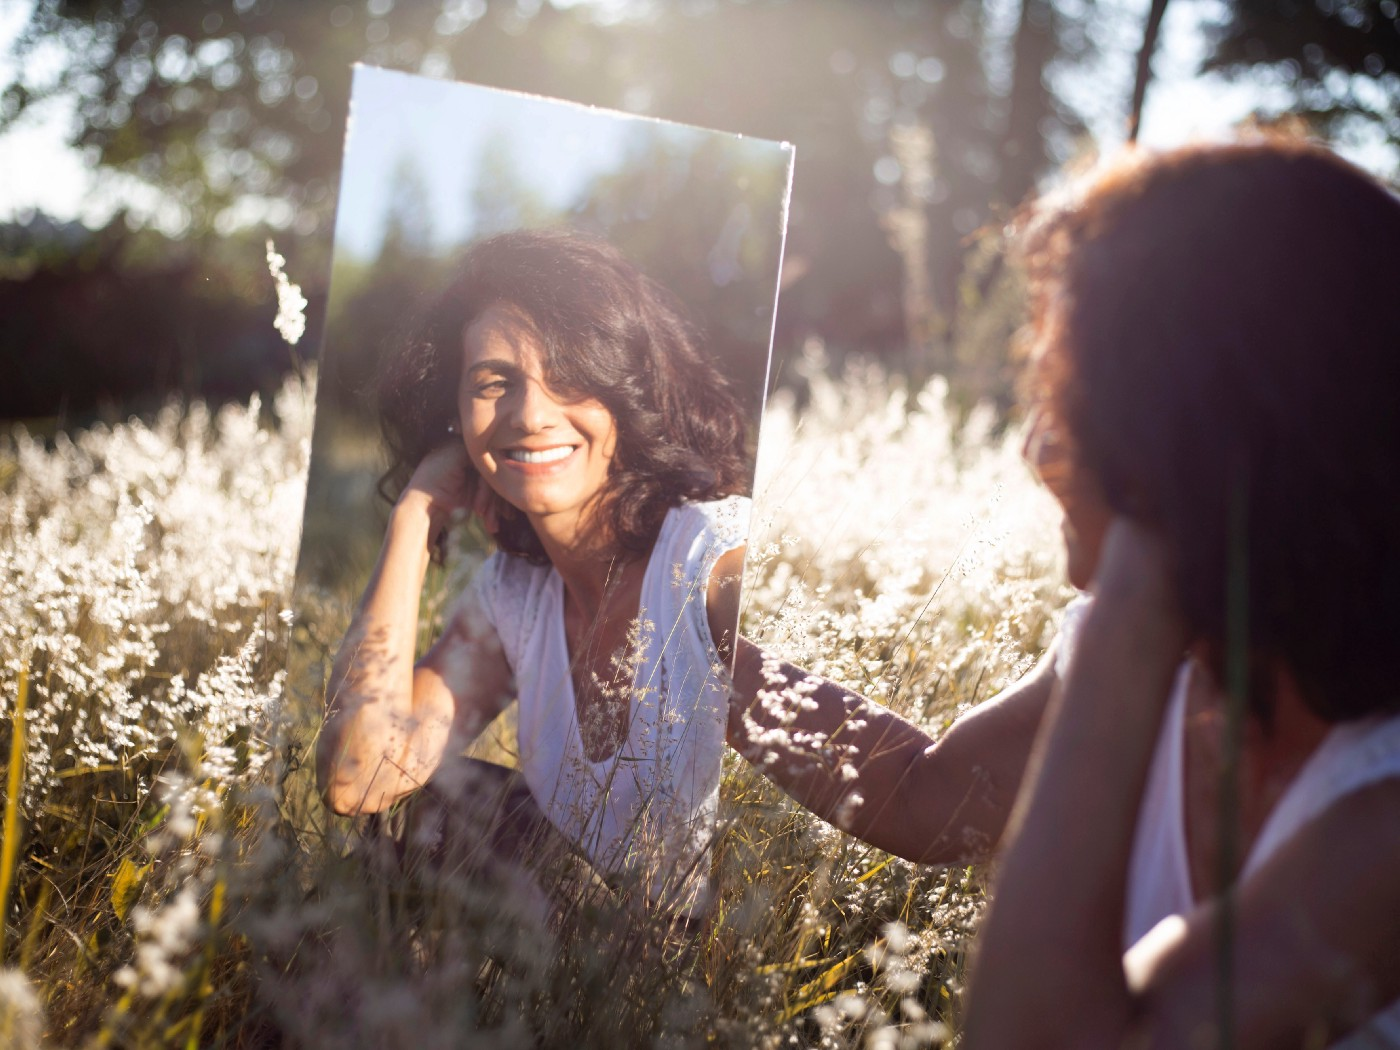 the image shows a young woman sitting in long grass holding up a mirror and smiling at her reflection